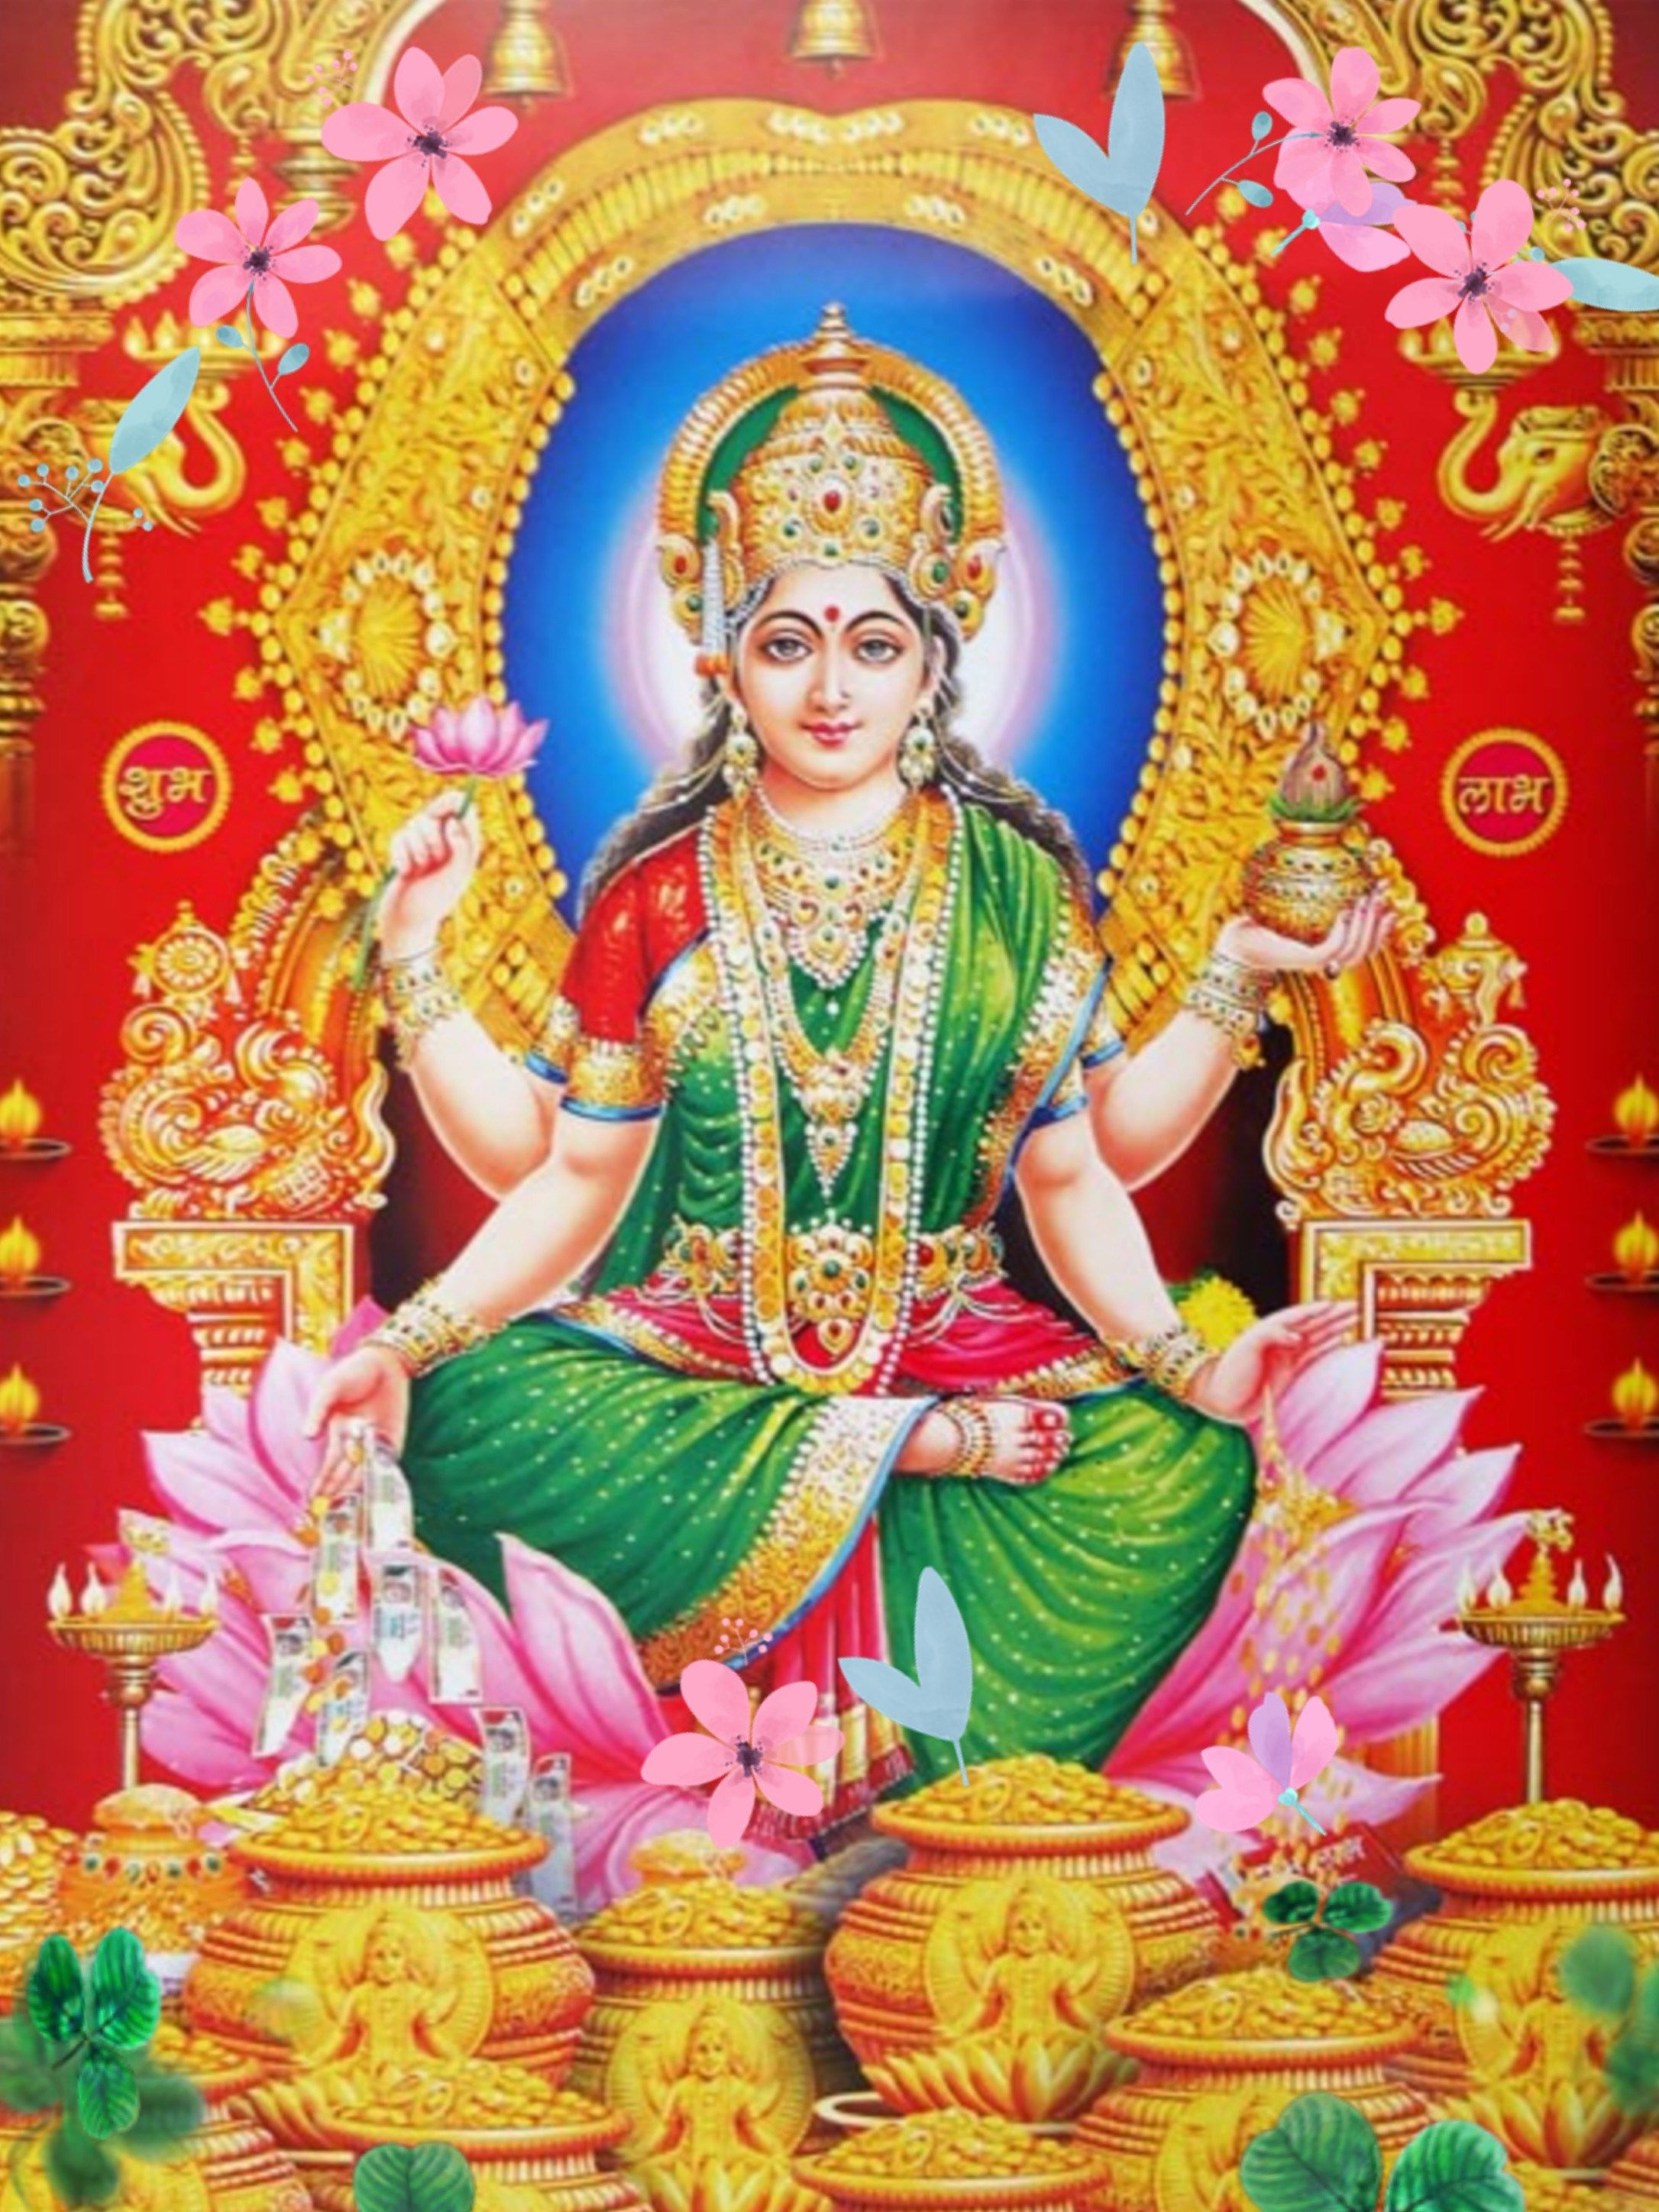 Maa Laxmi Photo Gallery Lakshmi Images Hindu Gods Devi Images Hd